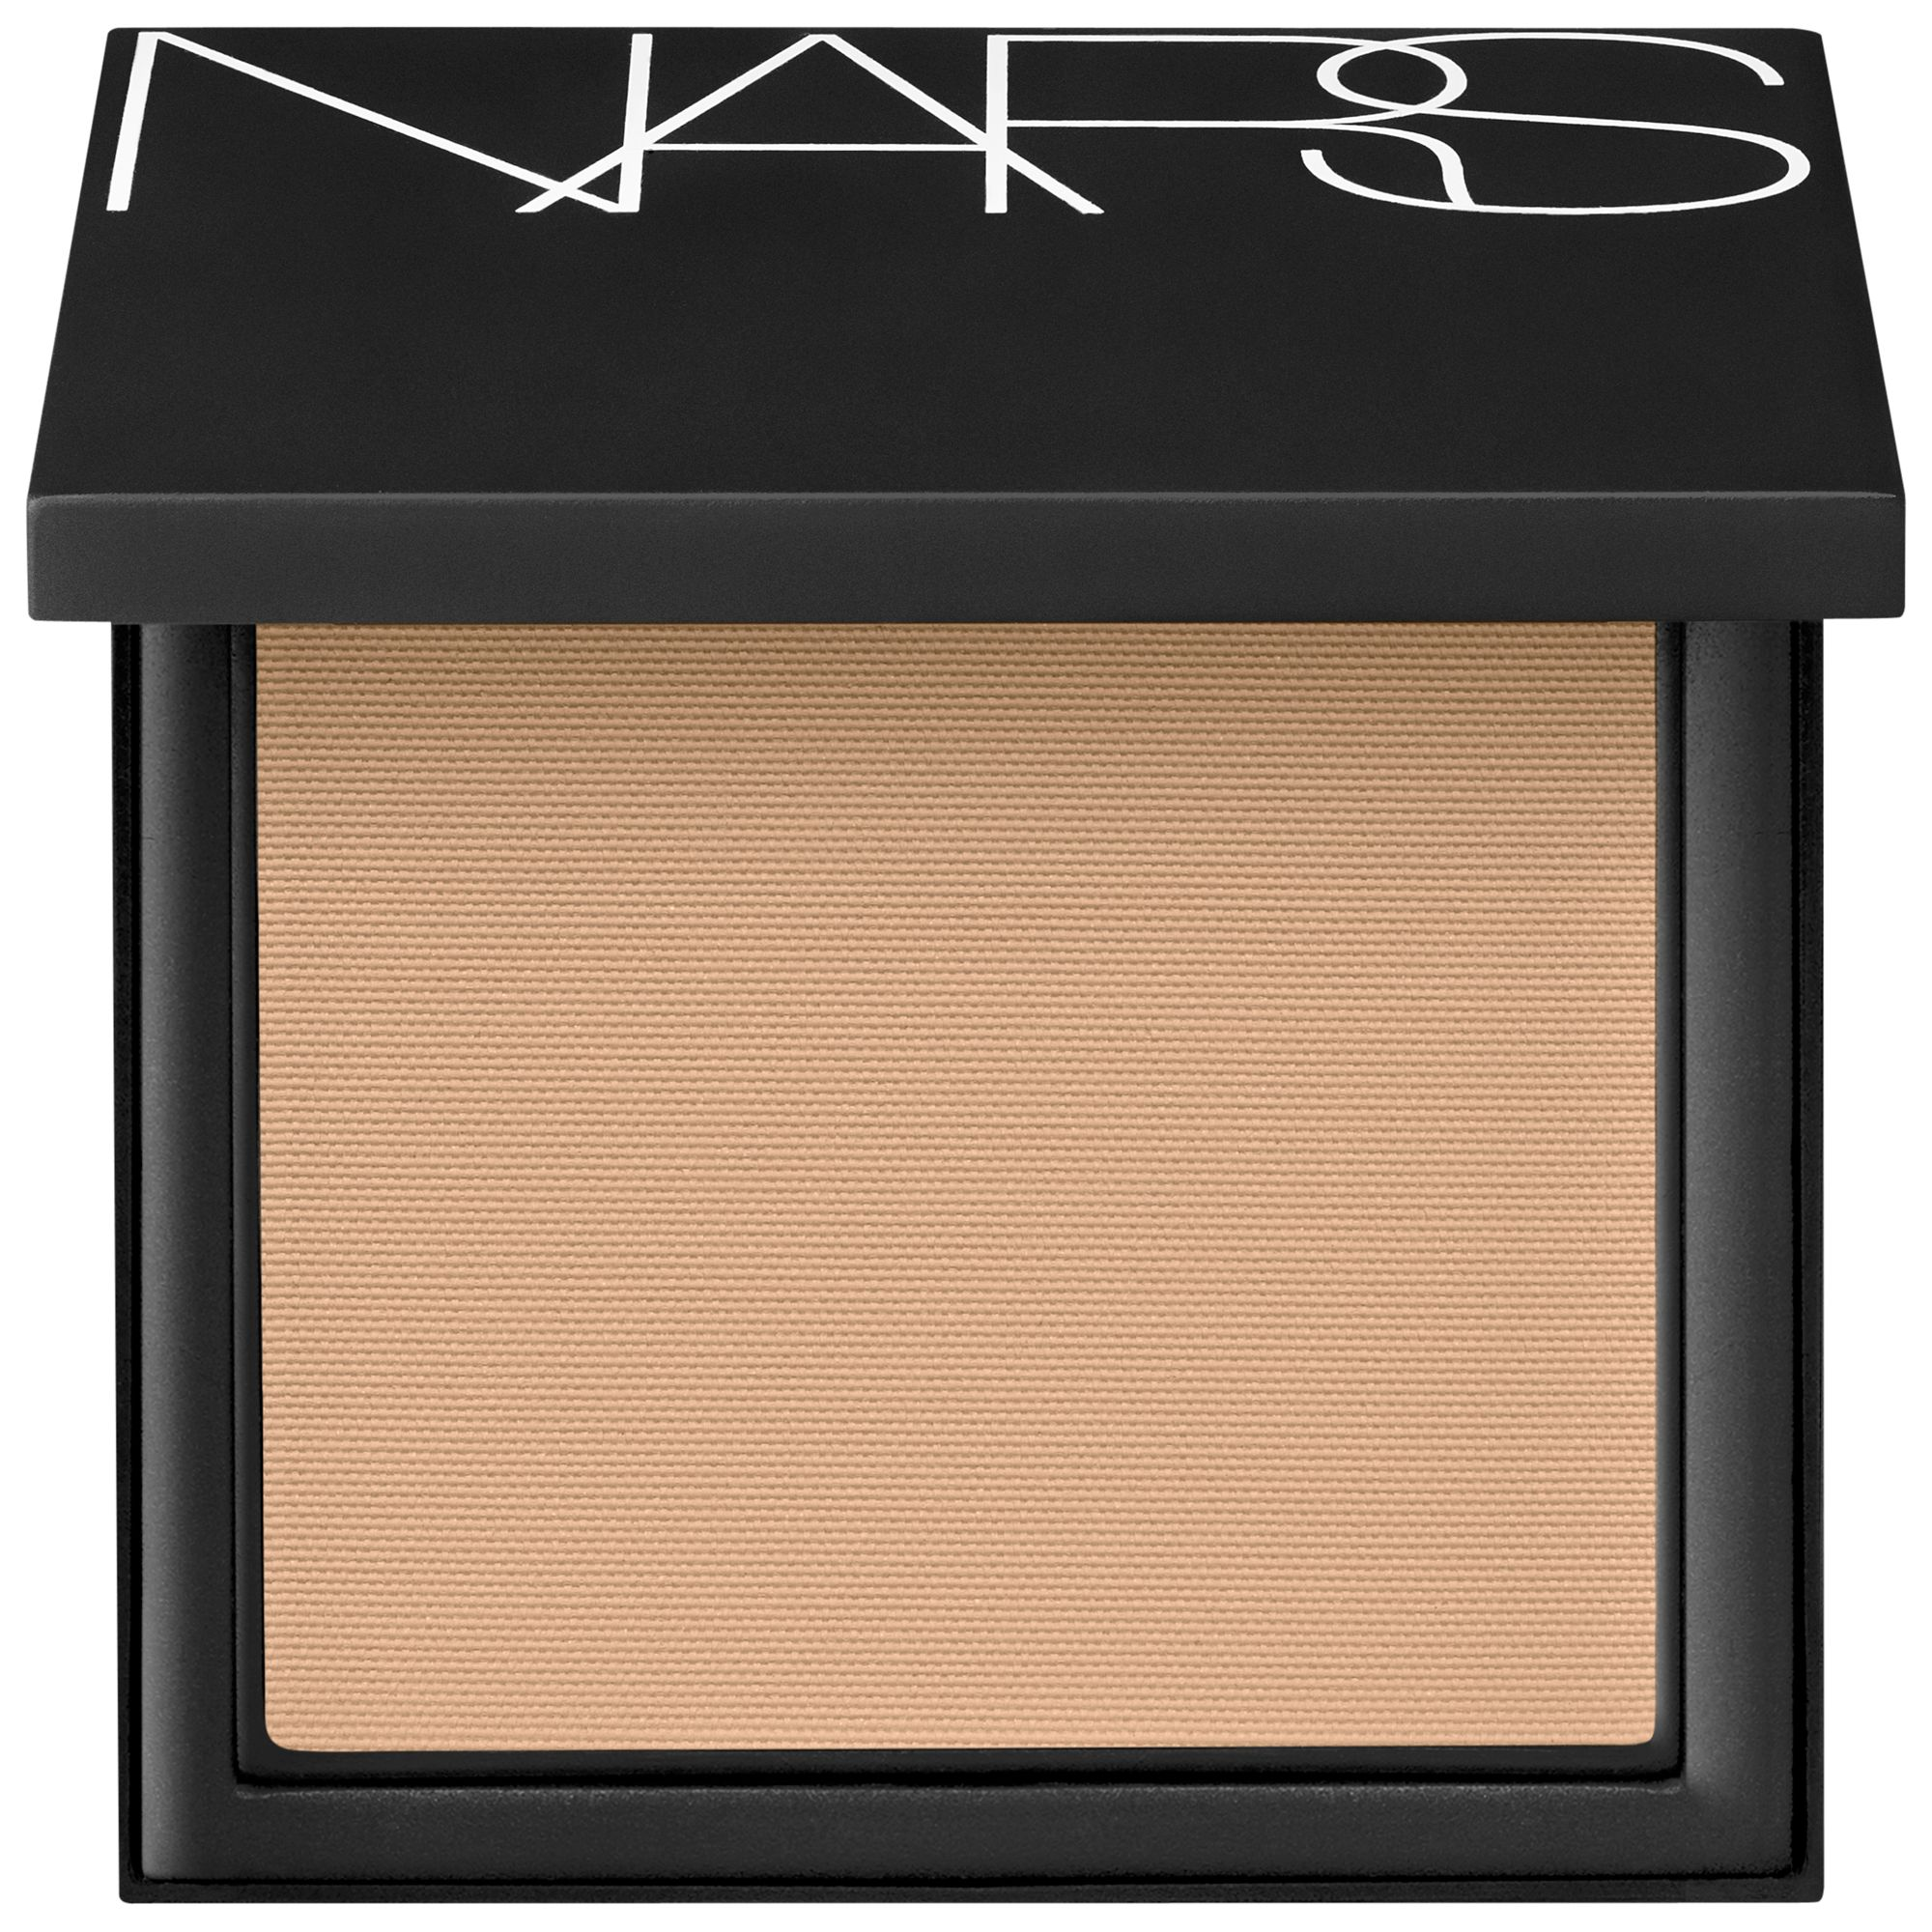 NARS NARS All Day Luminous Powder Foundation SPF 24